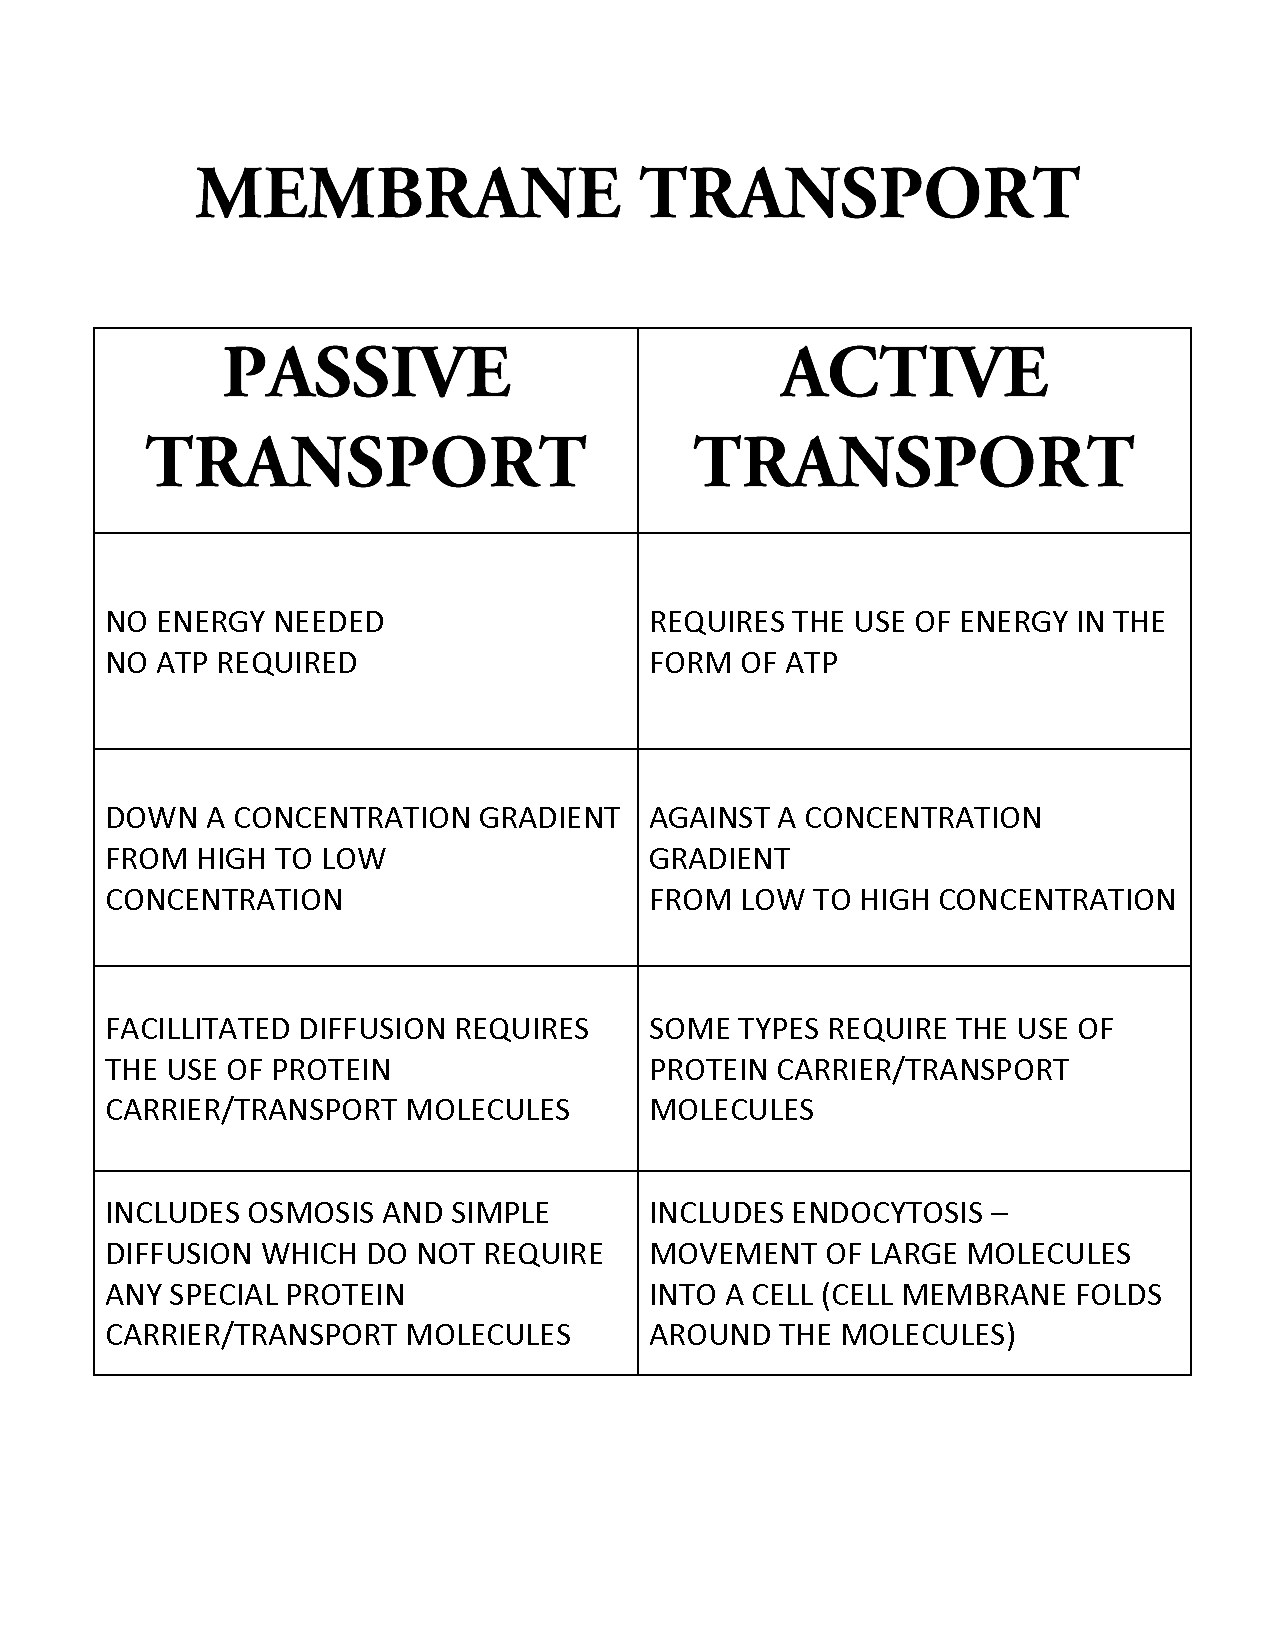 worksheet Passive And Active Transport Worksheet passive transport versus active biology class transport